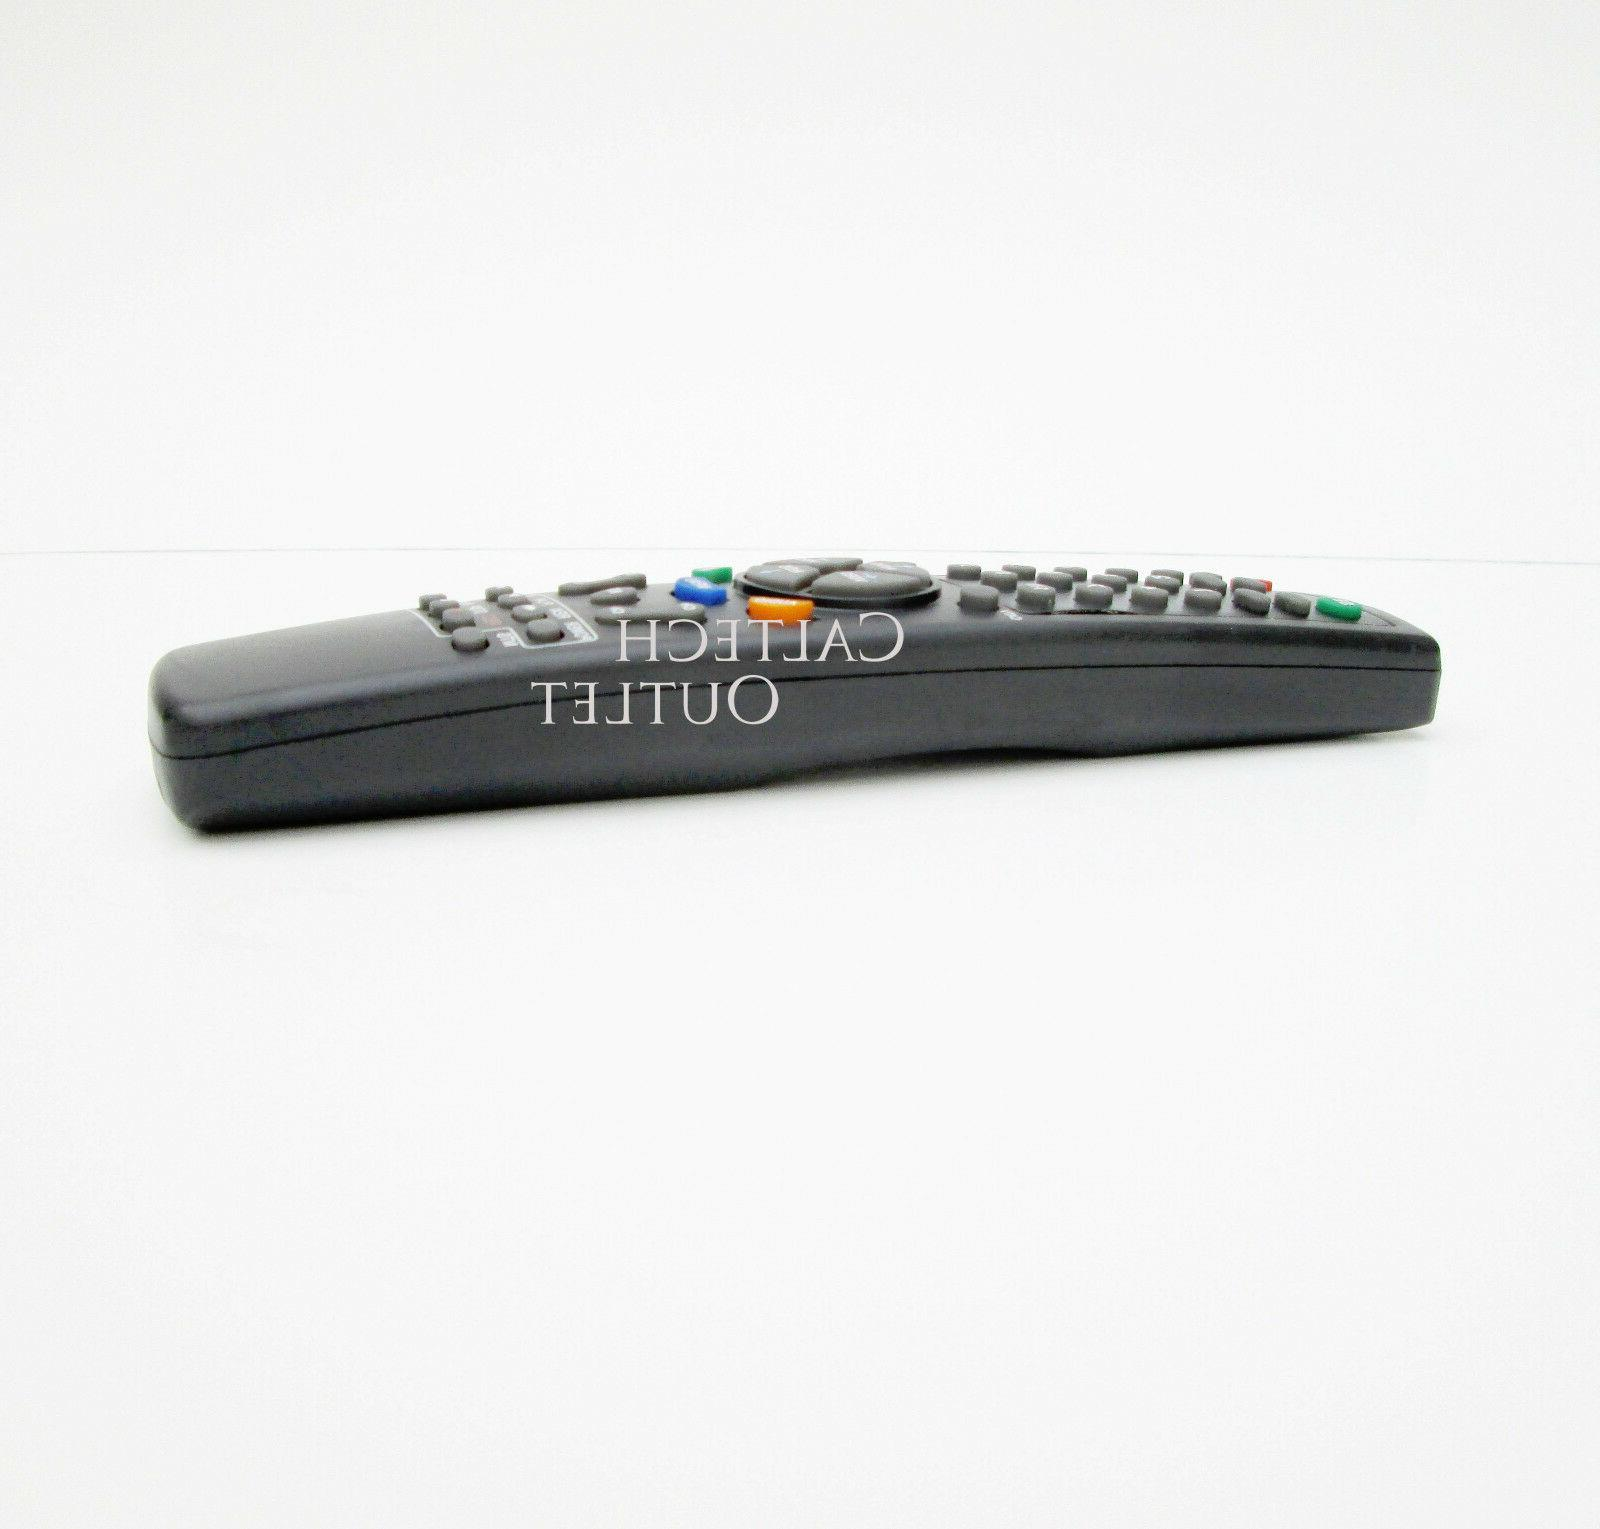 New Smart TV Remote control with Qwerty dual side keyboard a